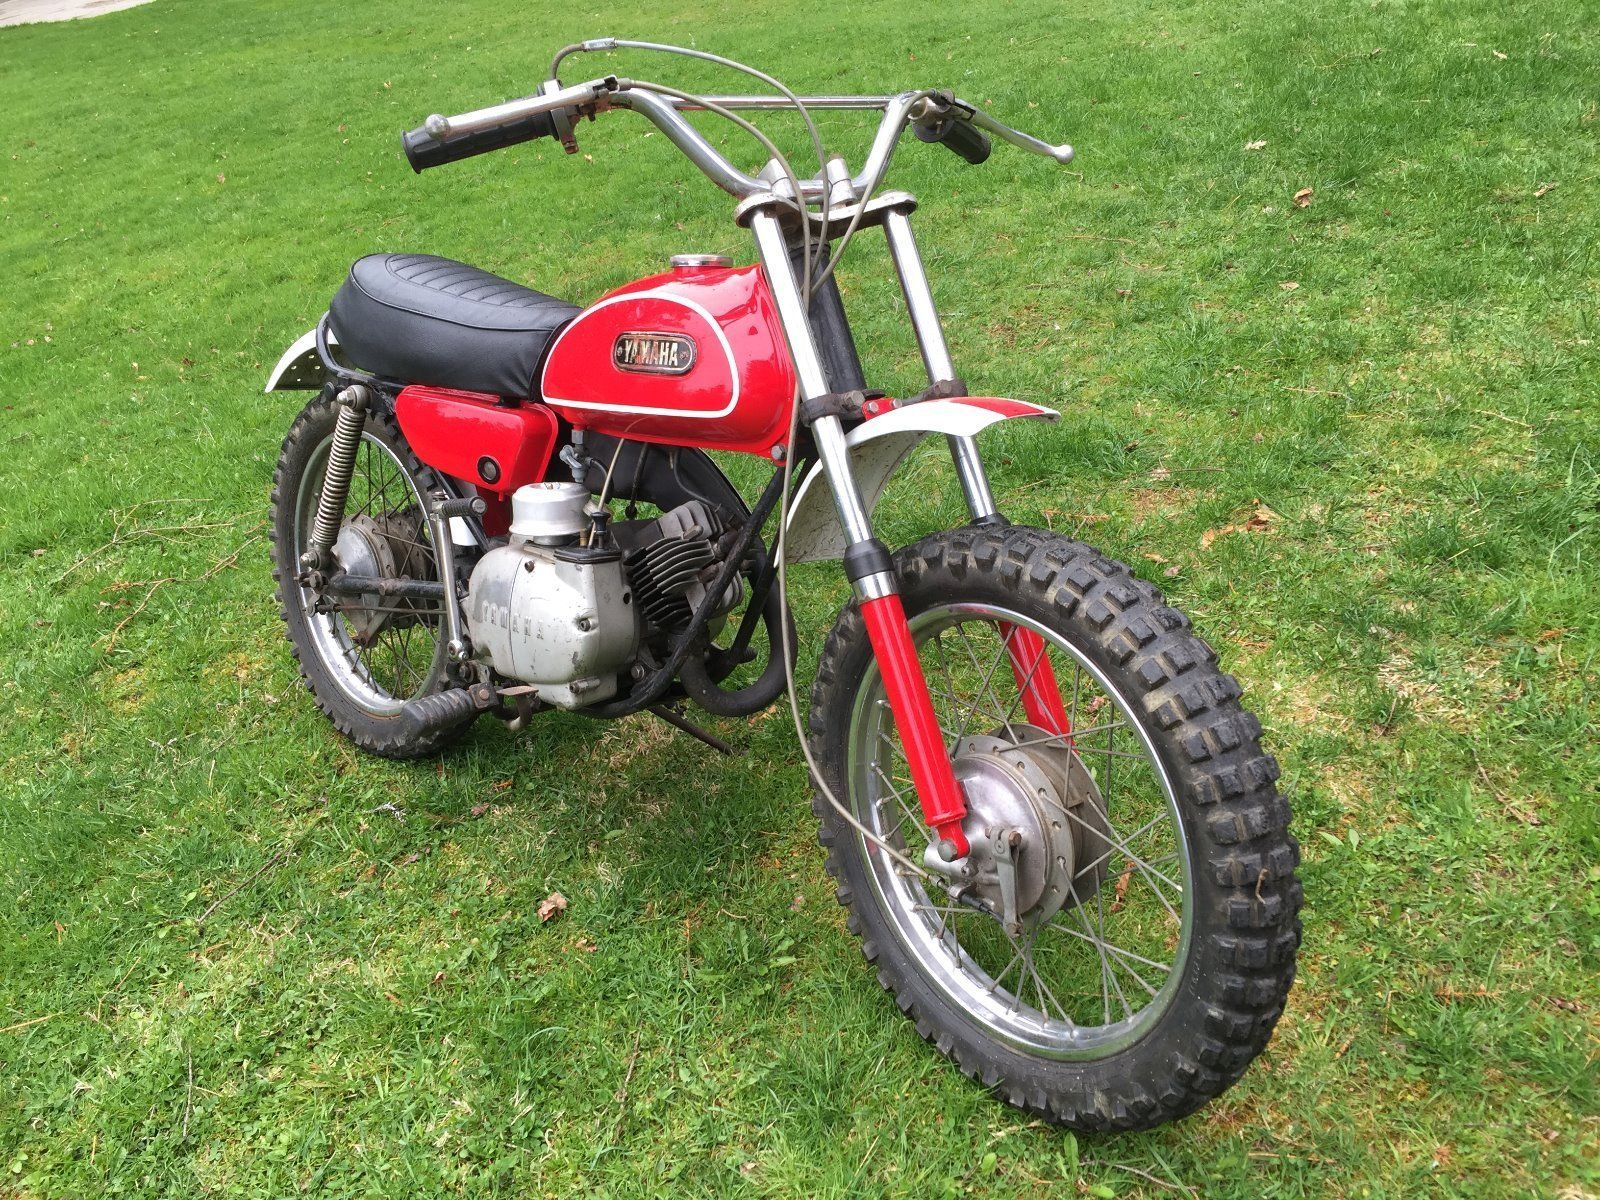 1971 yamaha jt1 mini enduro 60 ahrma vintage dirt bike. Black Bedroom Furniture Sets. Home Design Ideas